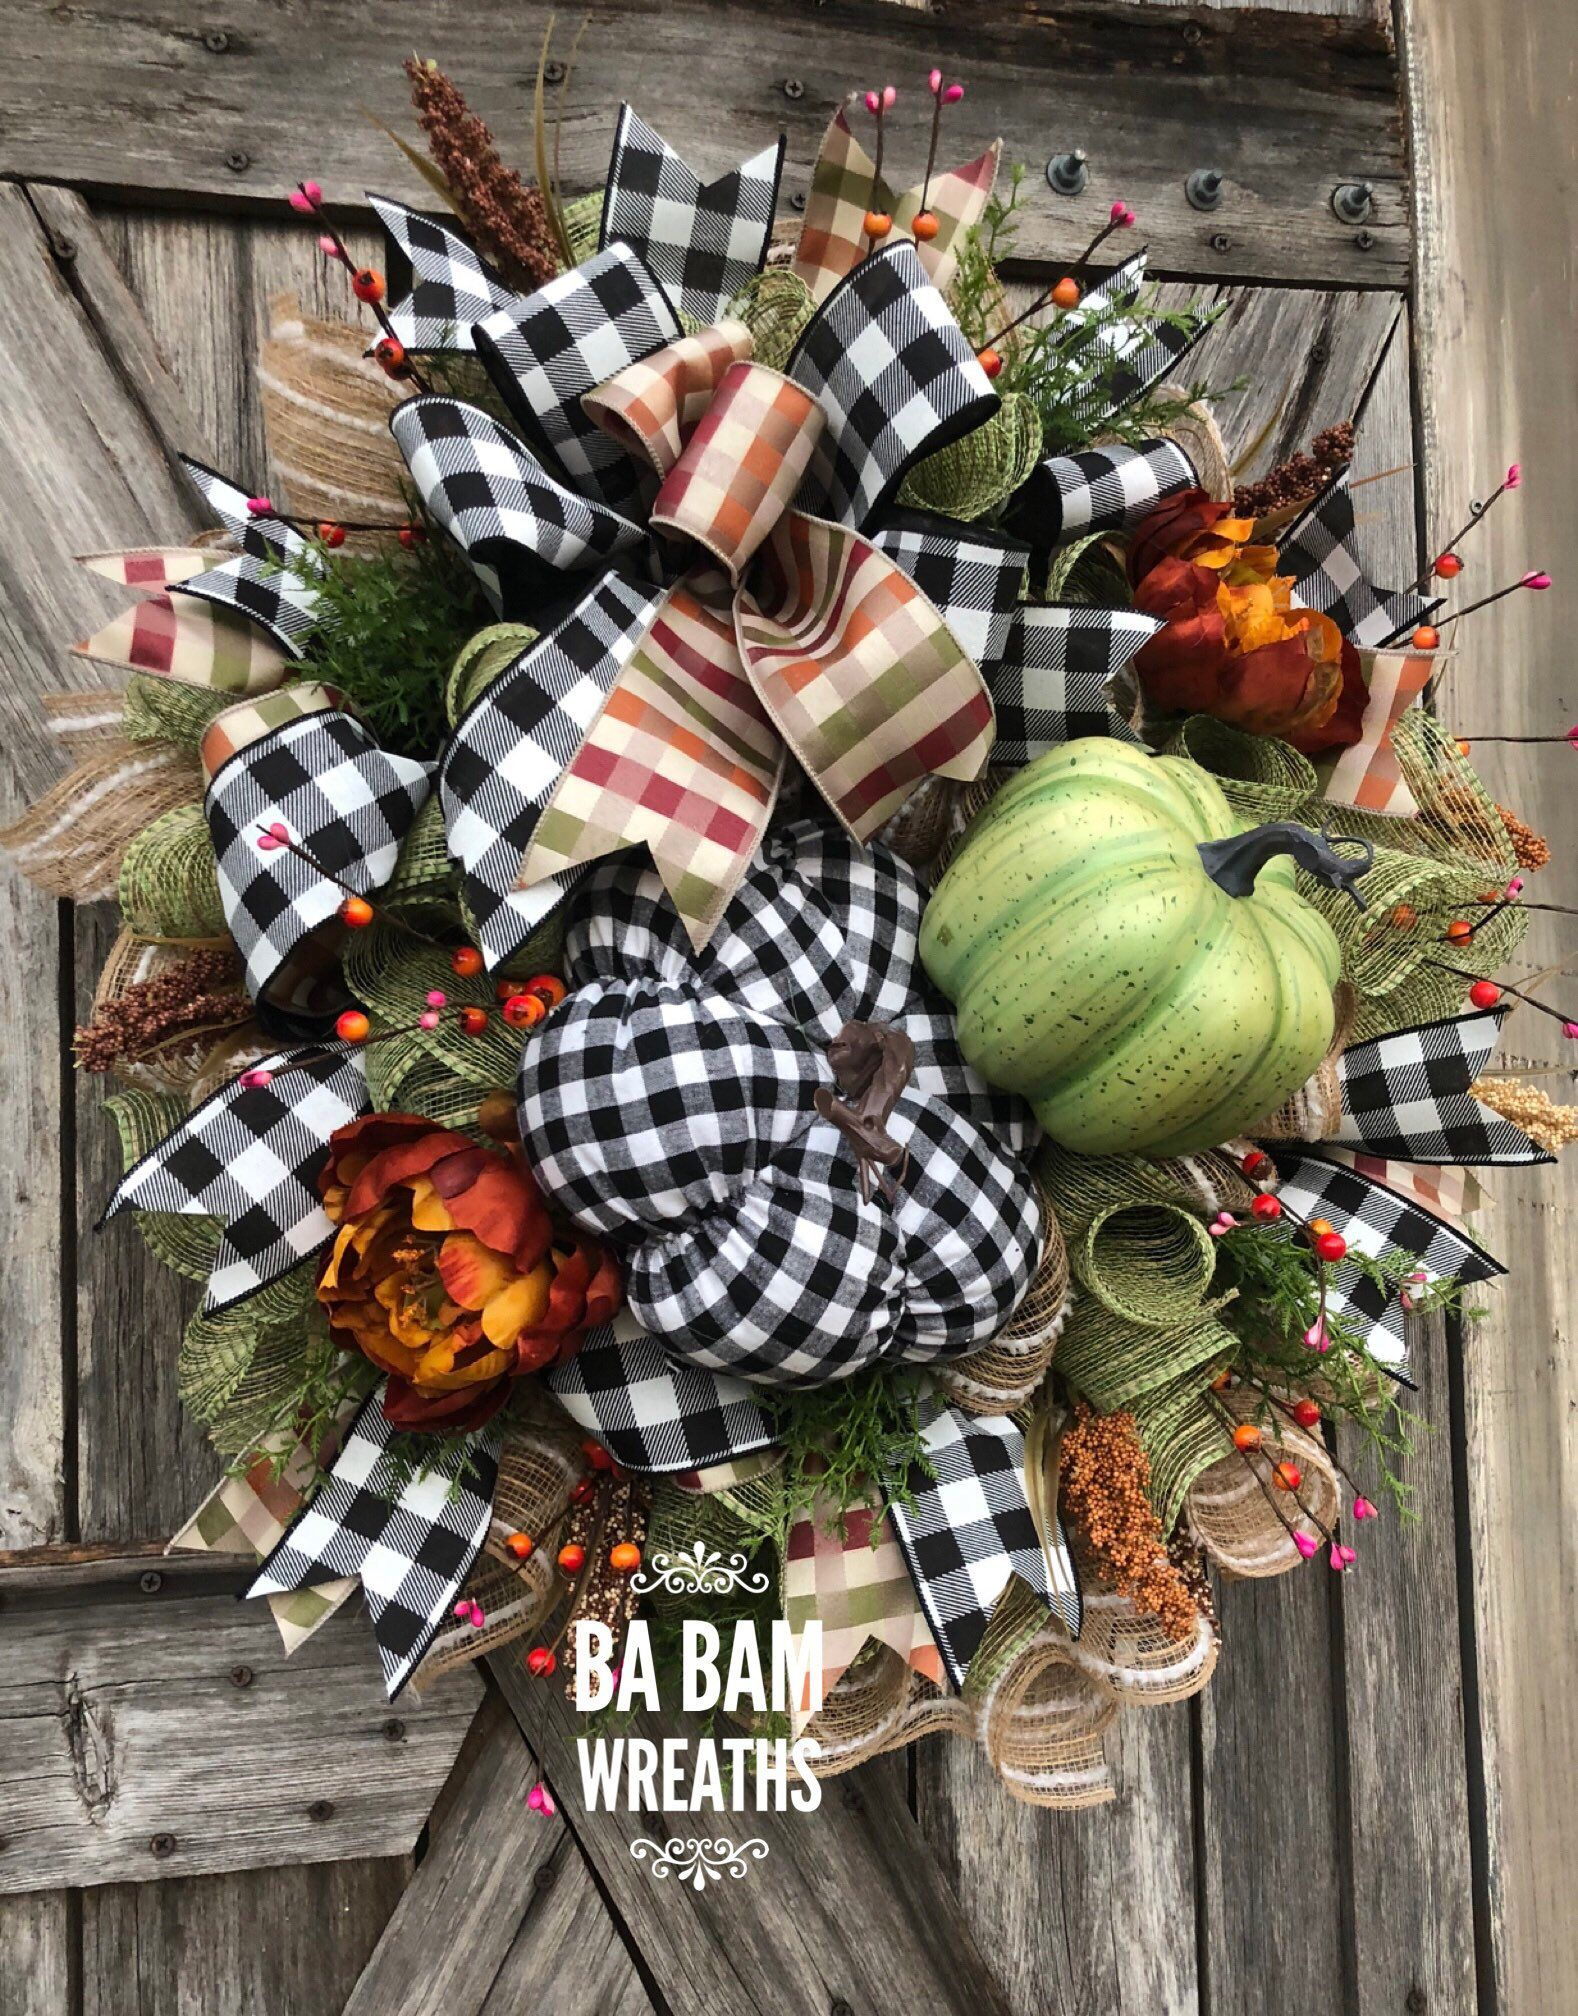 Ba Bam Wreaths, Fall Wreath, Fall Swag, Autumn Swag, Autumn